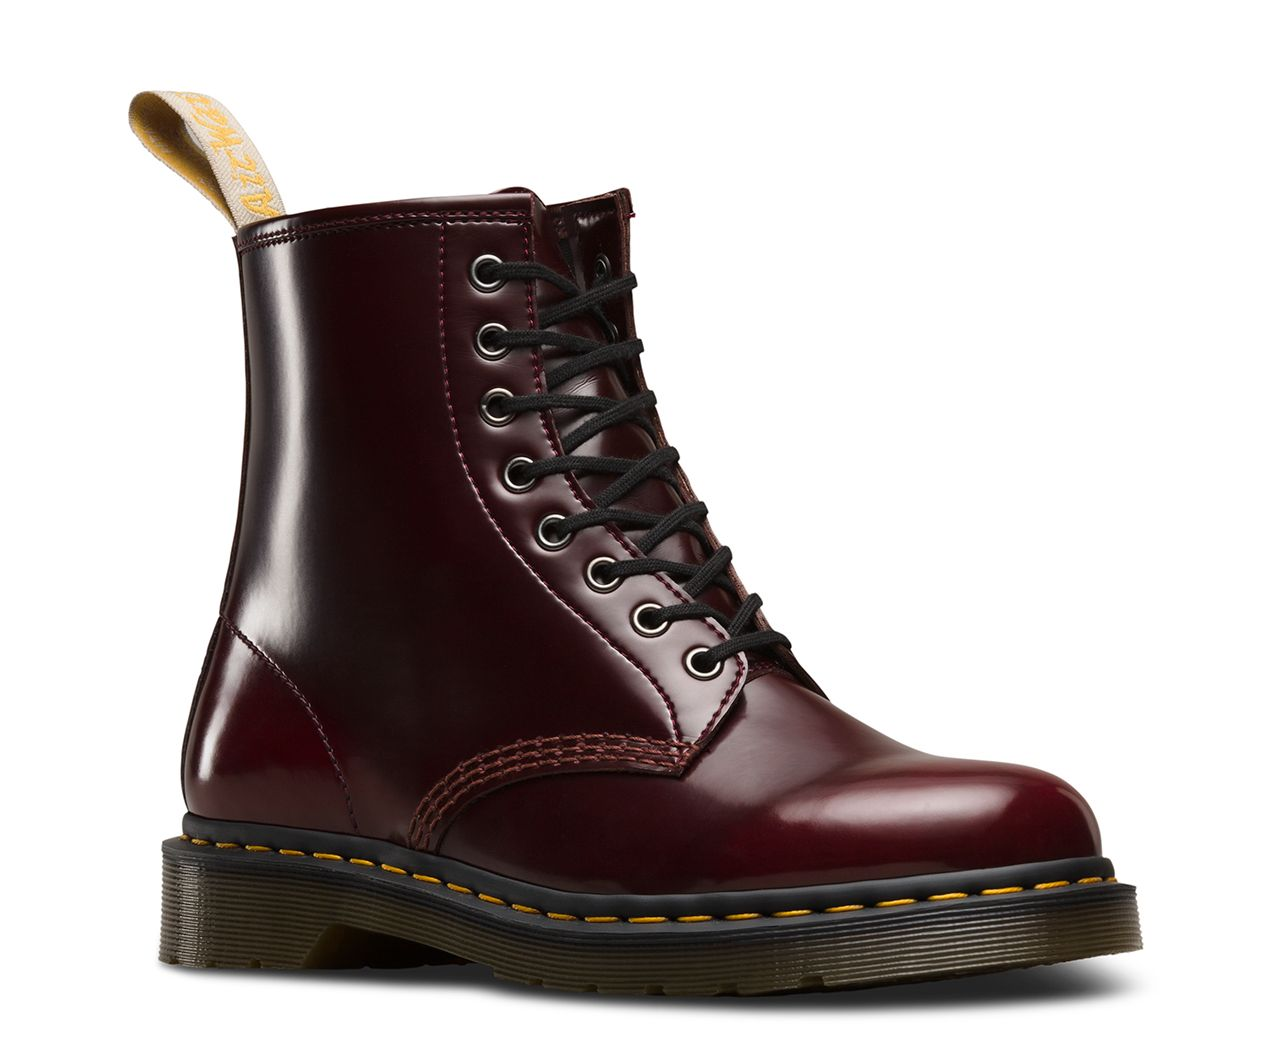 GIRLS WOMEN/'S NEW SCHOOL DR CASUAL PUNK RETRO VINTAGE LACE UP LEATHER DMS BOOTS